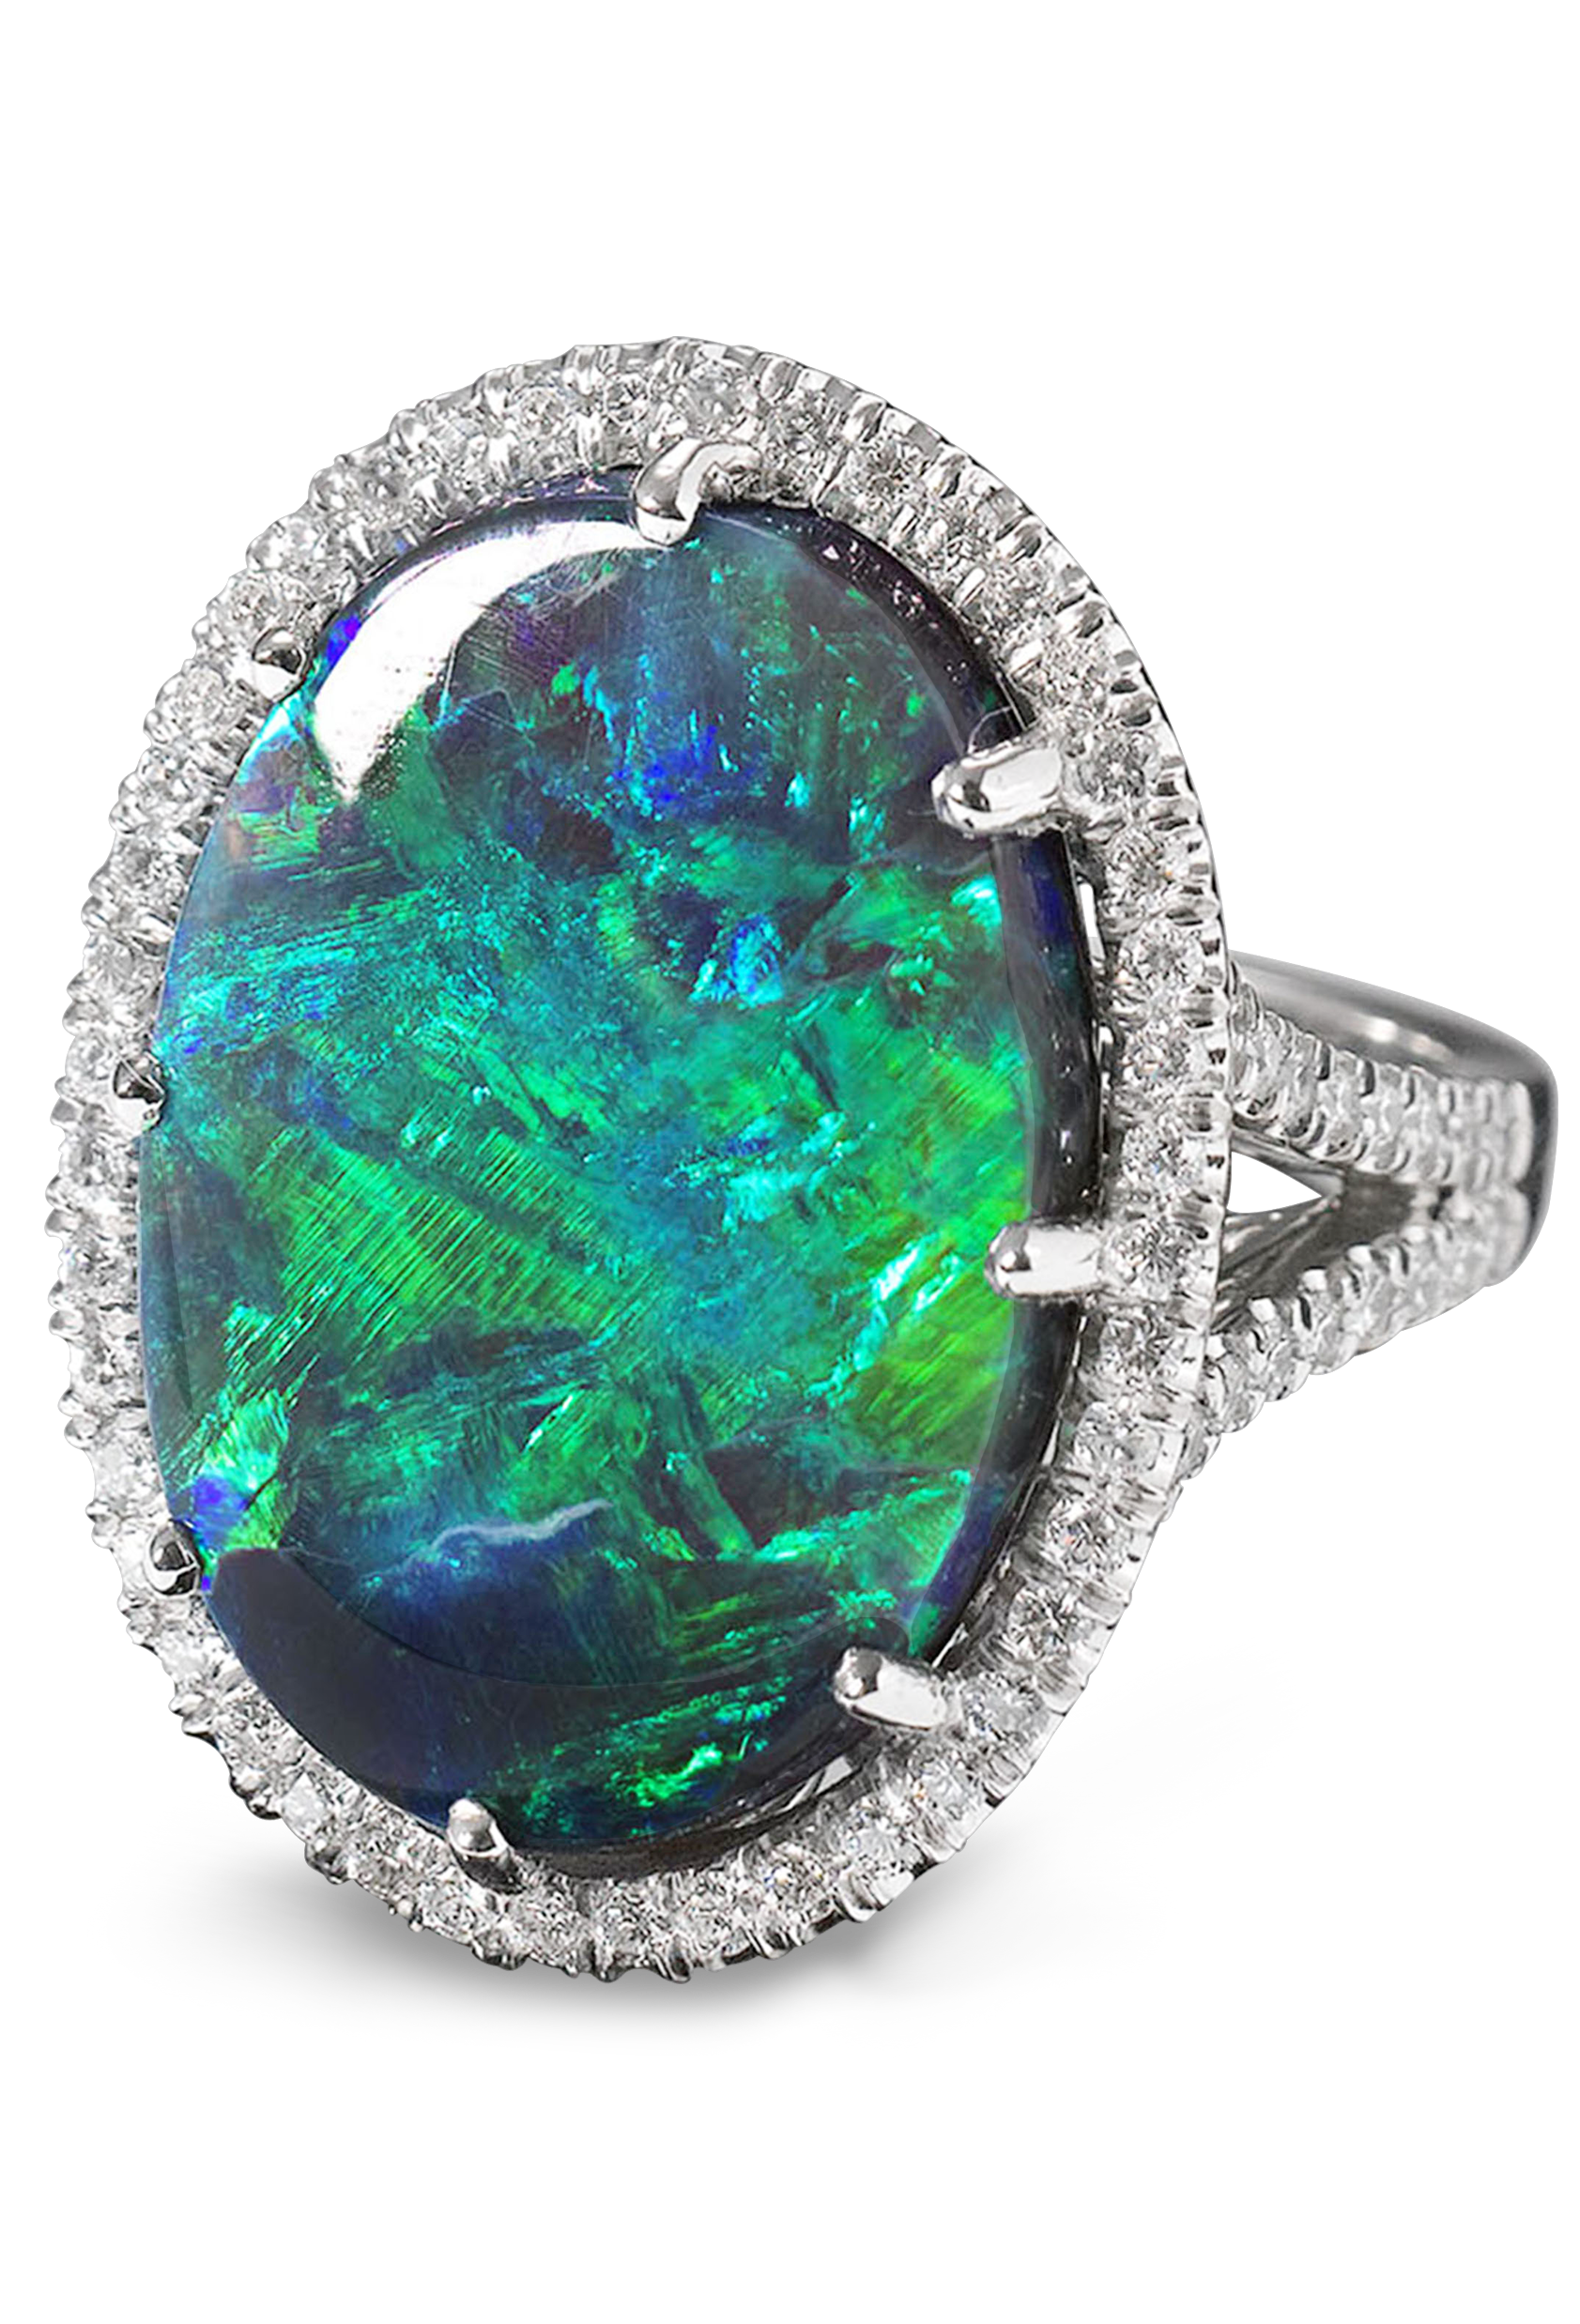 ritani blog gemstone cocktail diamond jewelry teal new topaz rings